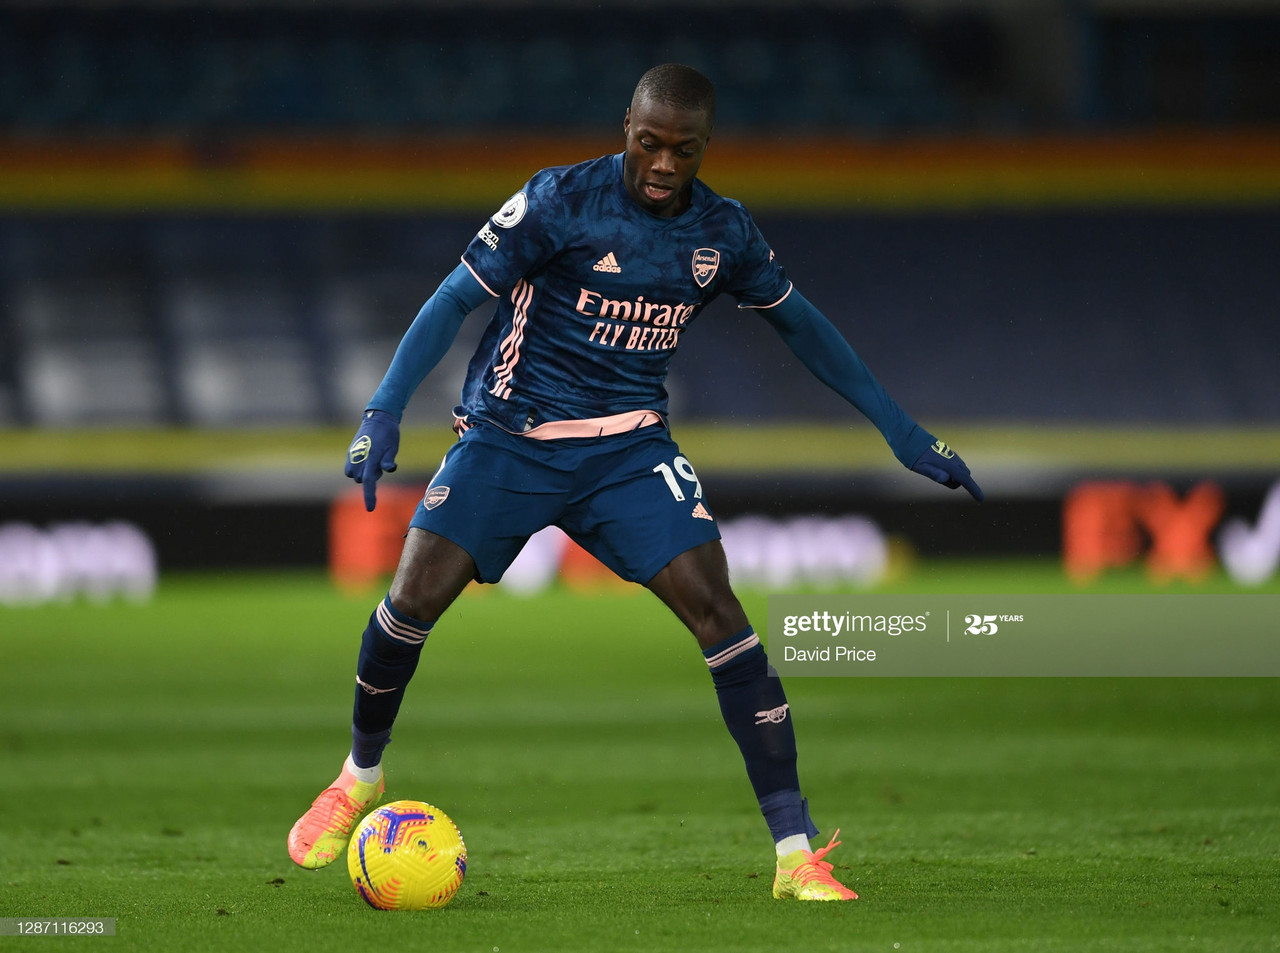 LEEDS, ENGLAND - NOVEMBER 22: Nicolas Pepe of Arsenal during the Premier League match between Leeds United and Arsenal at Elland Road on November 22, 2020 in Leeds, England. (Photo by David Price/Arsenal FC via Getty Images)